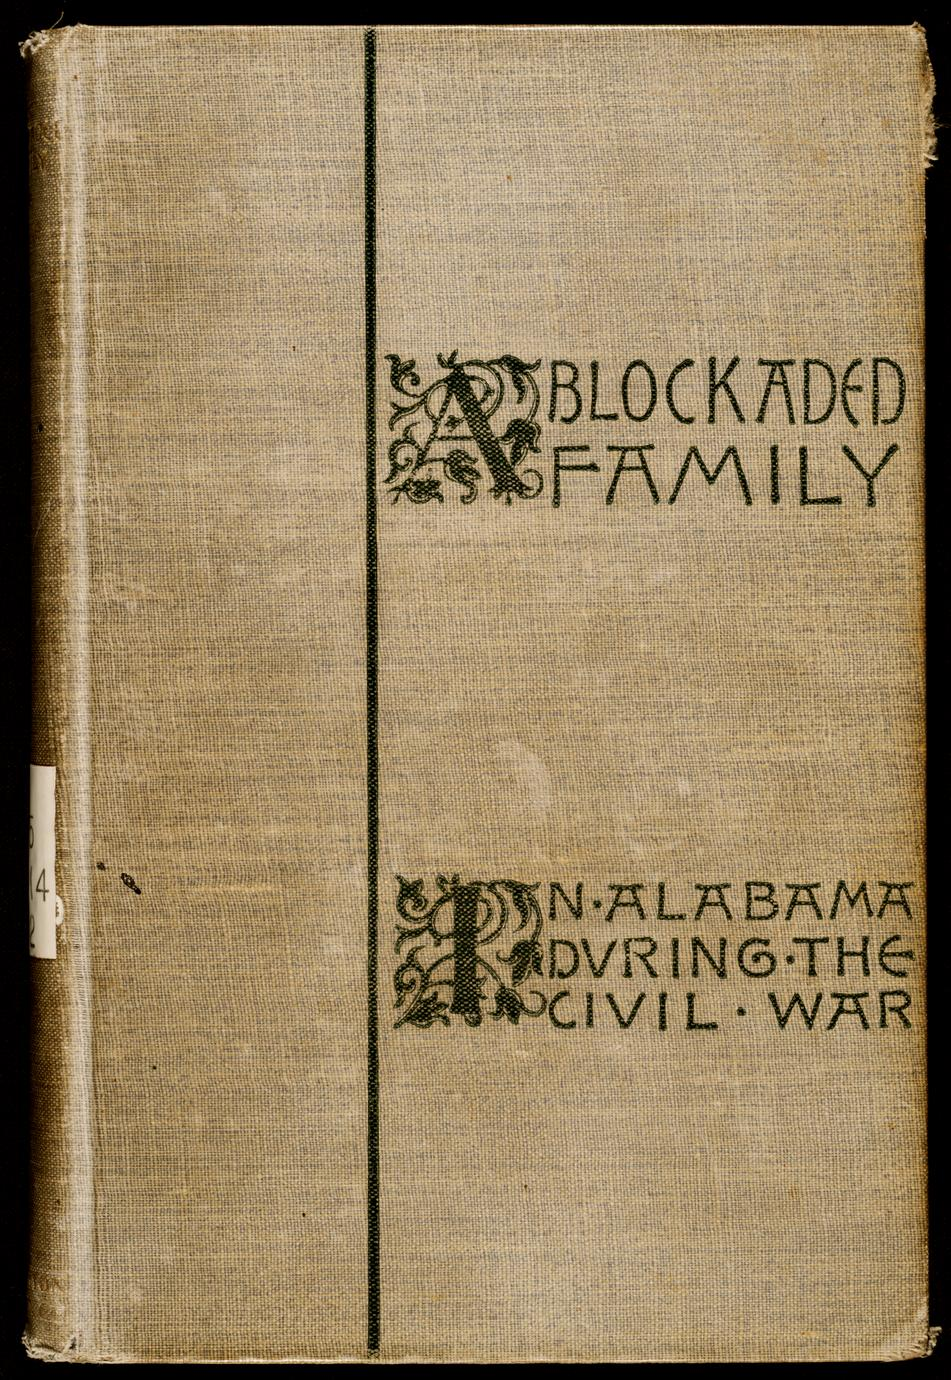 A blockaded family : life in southern Alabama during the Civil War (1 of 2)